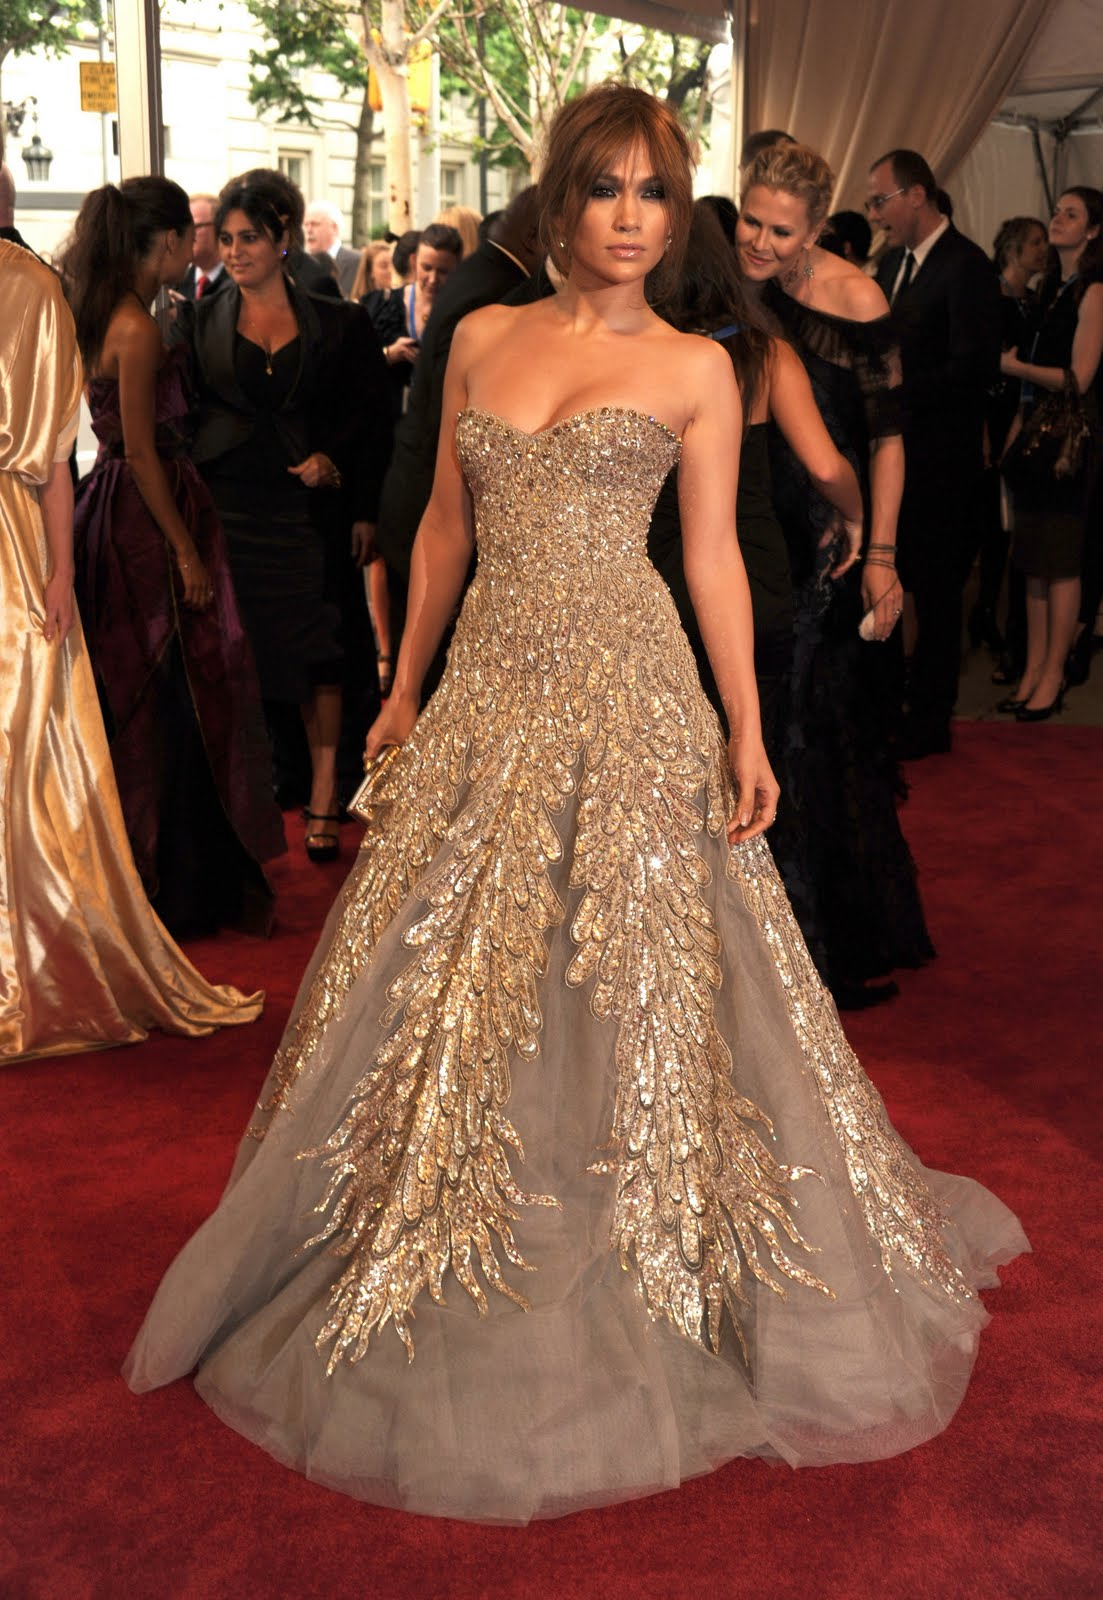 Jennifer Lopezs Sheer, Feathered Ralph & Russo Gown Will